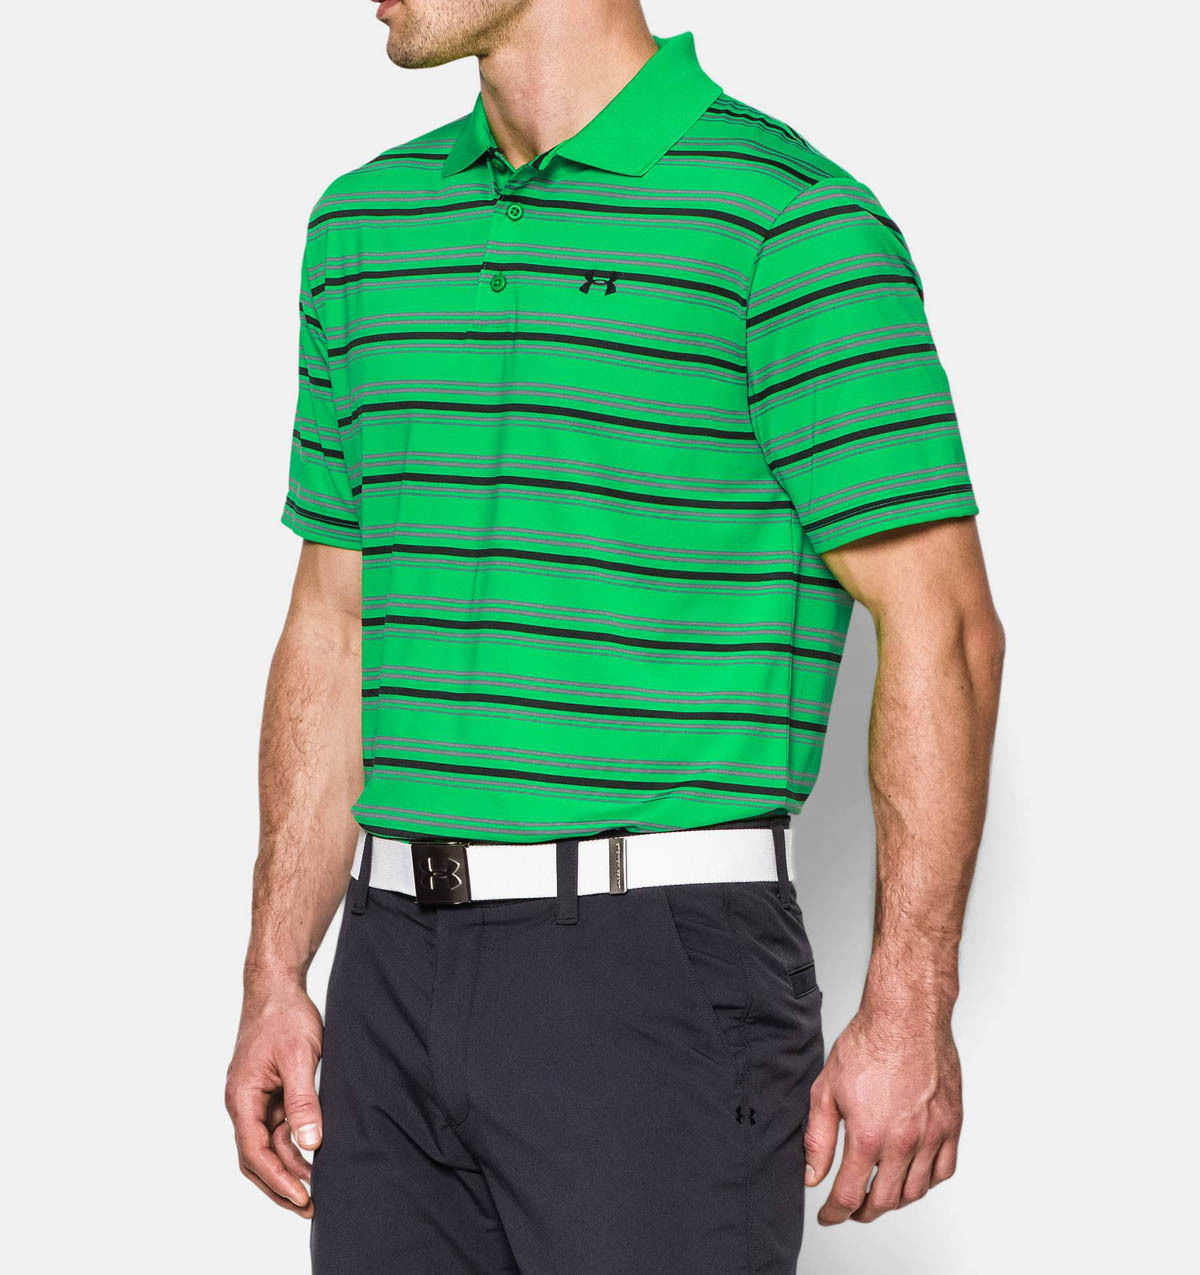 8d4abcf72 Under Armour Mens Heat Gear Golf Loose Fit Polo Shirts